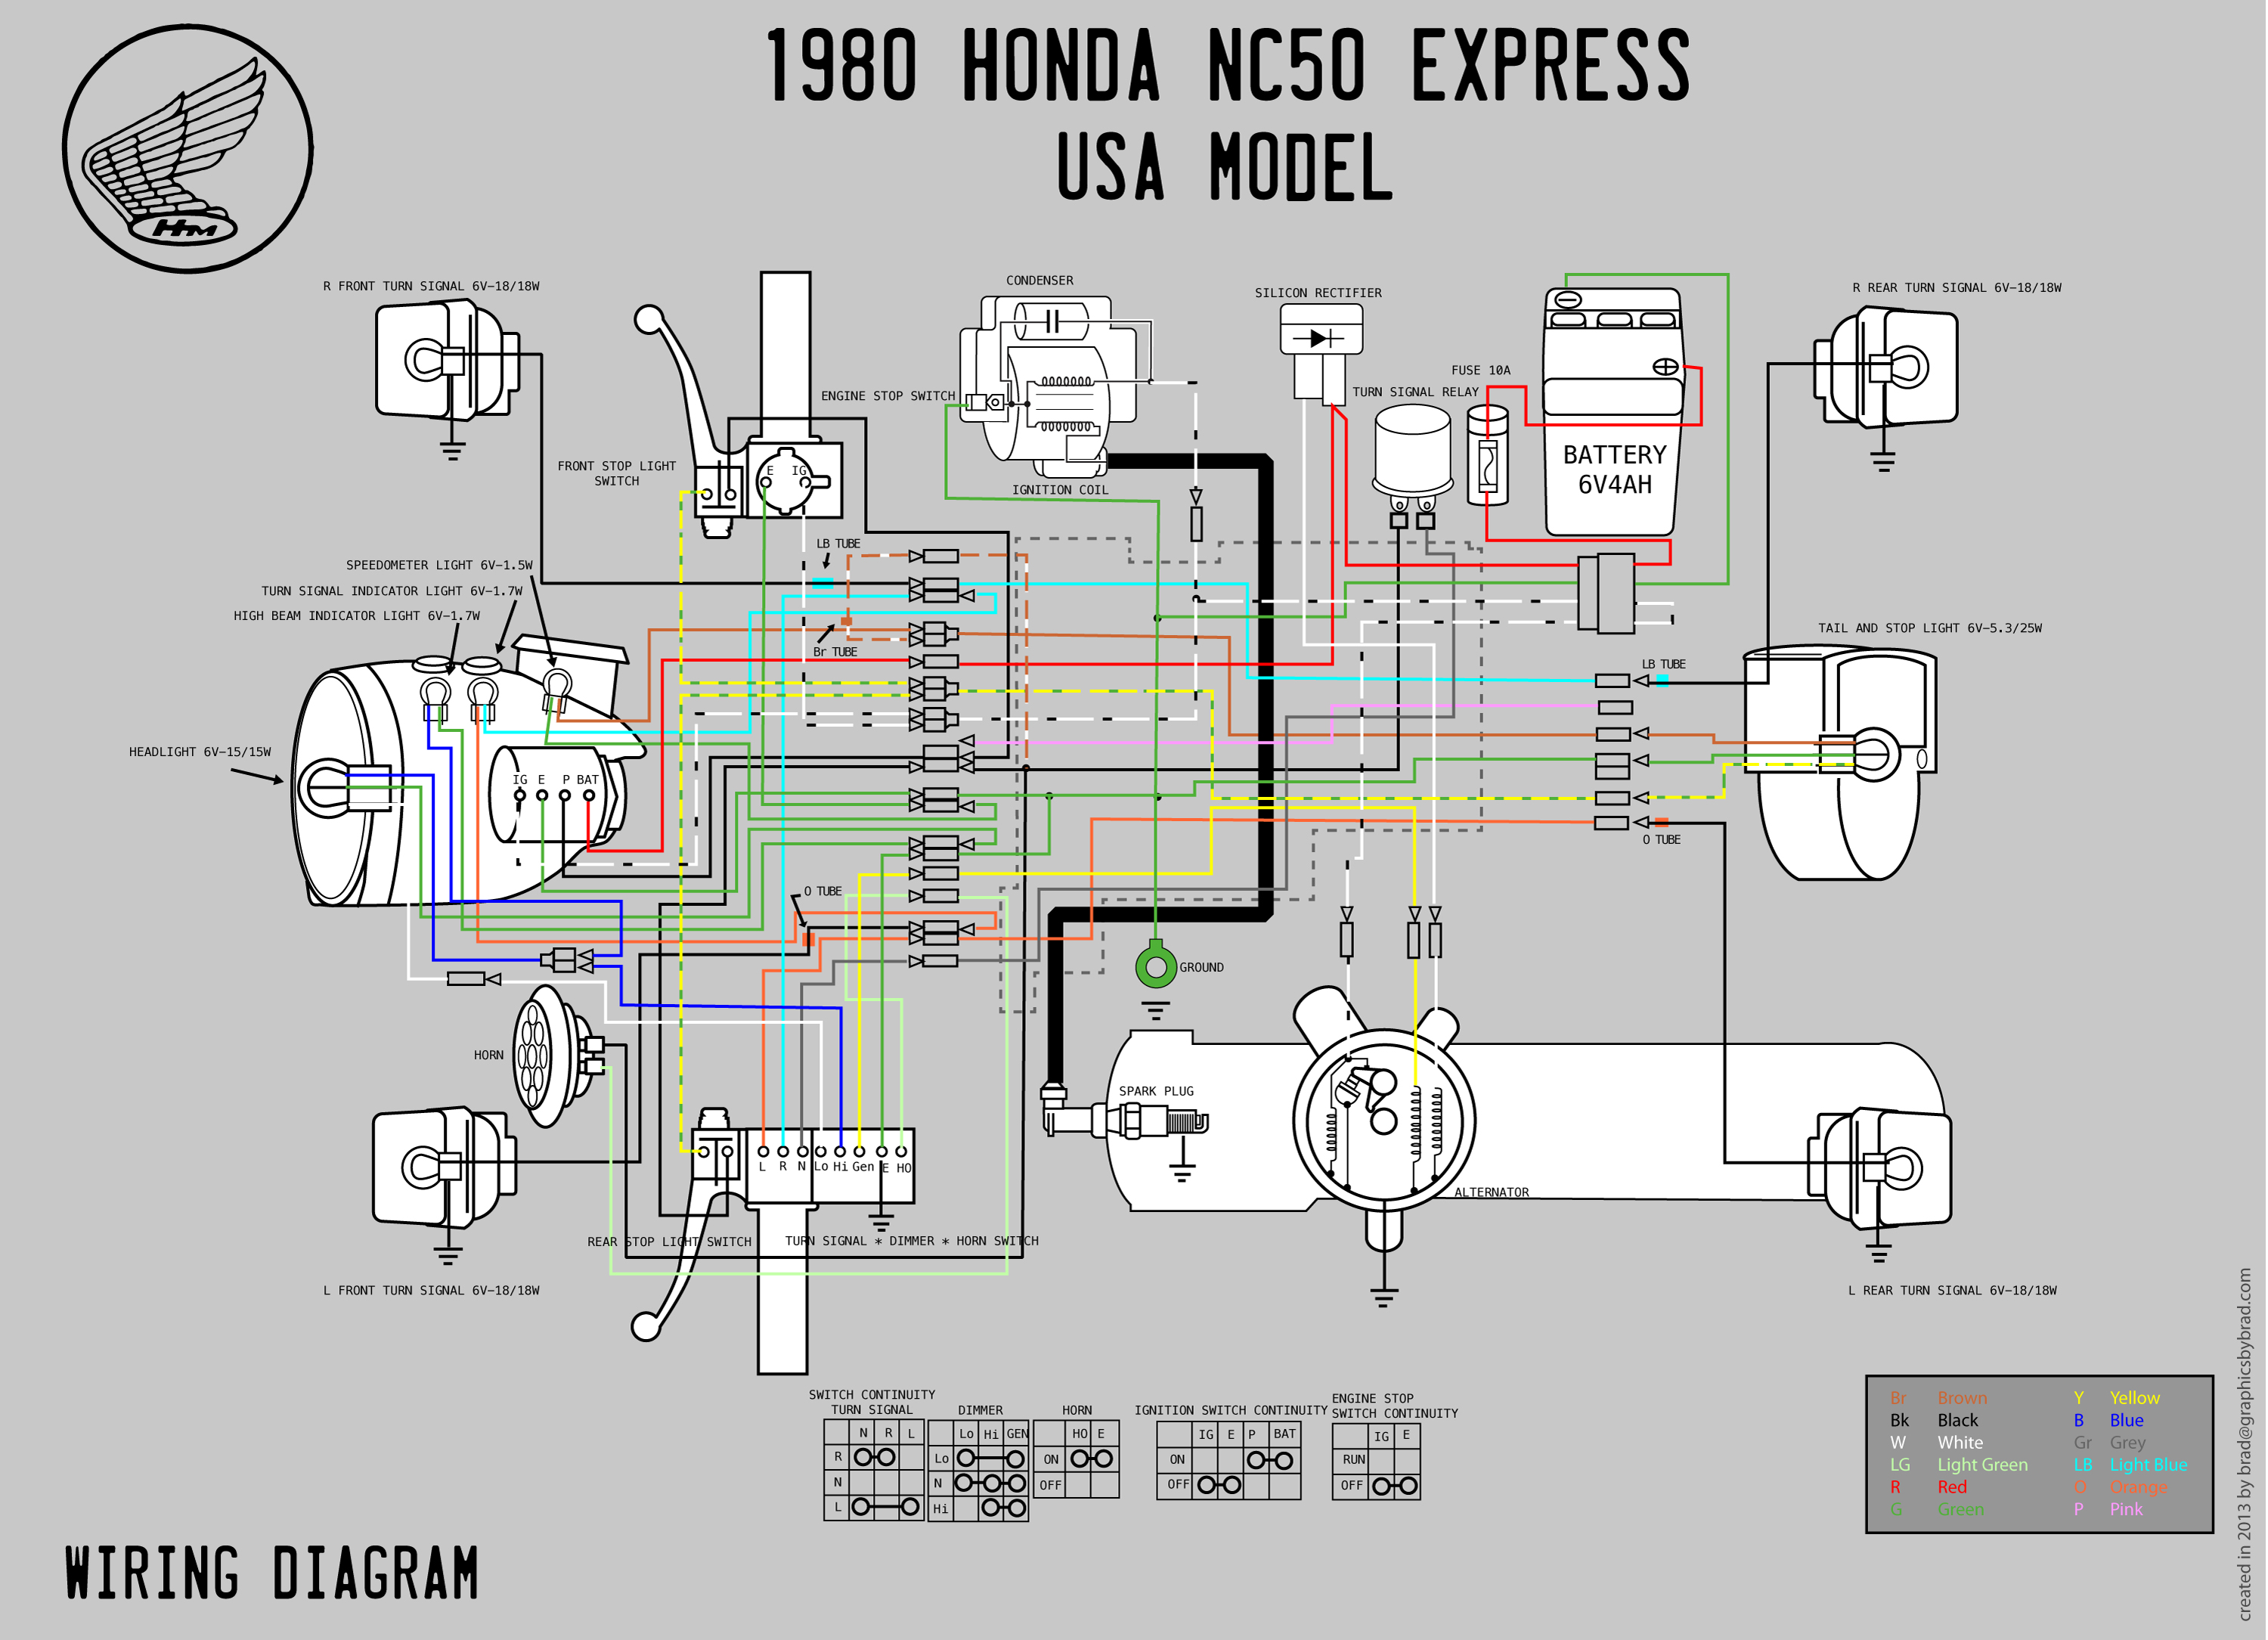 1980 nc50 wiring lrg 1980 honda nc50 wiring diagram moped wiki moped wiring diagram at readyjetset.co